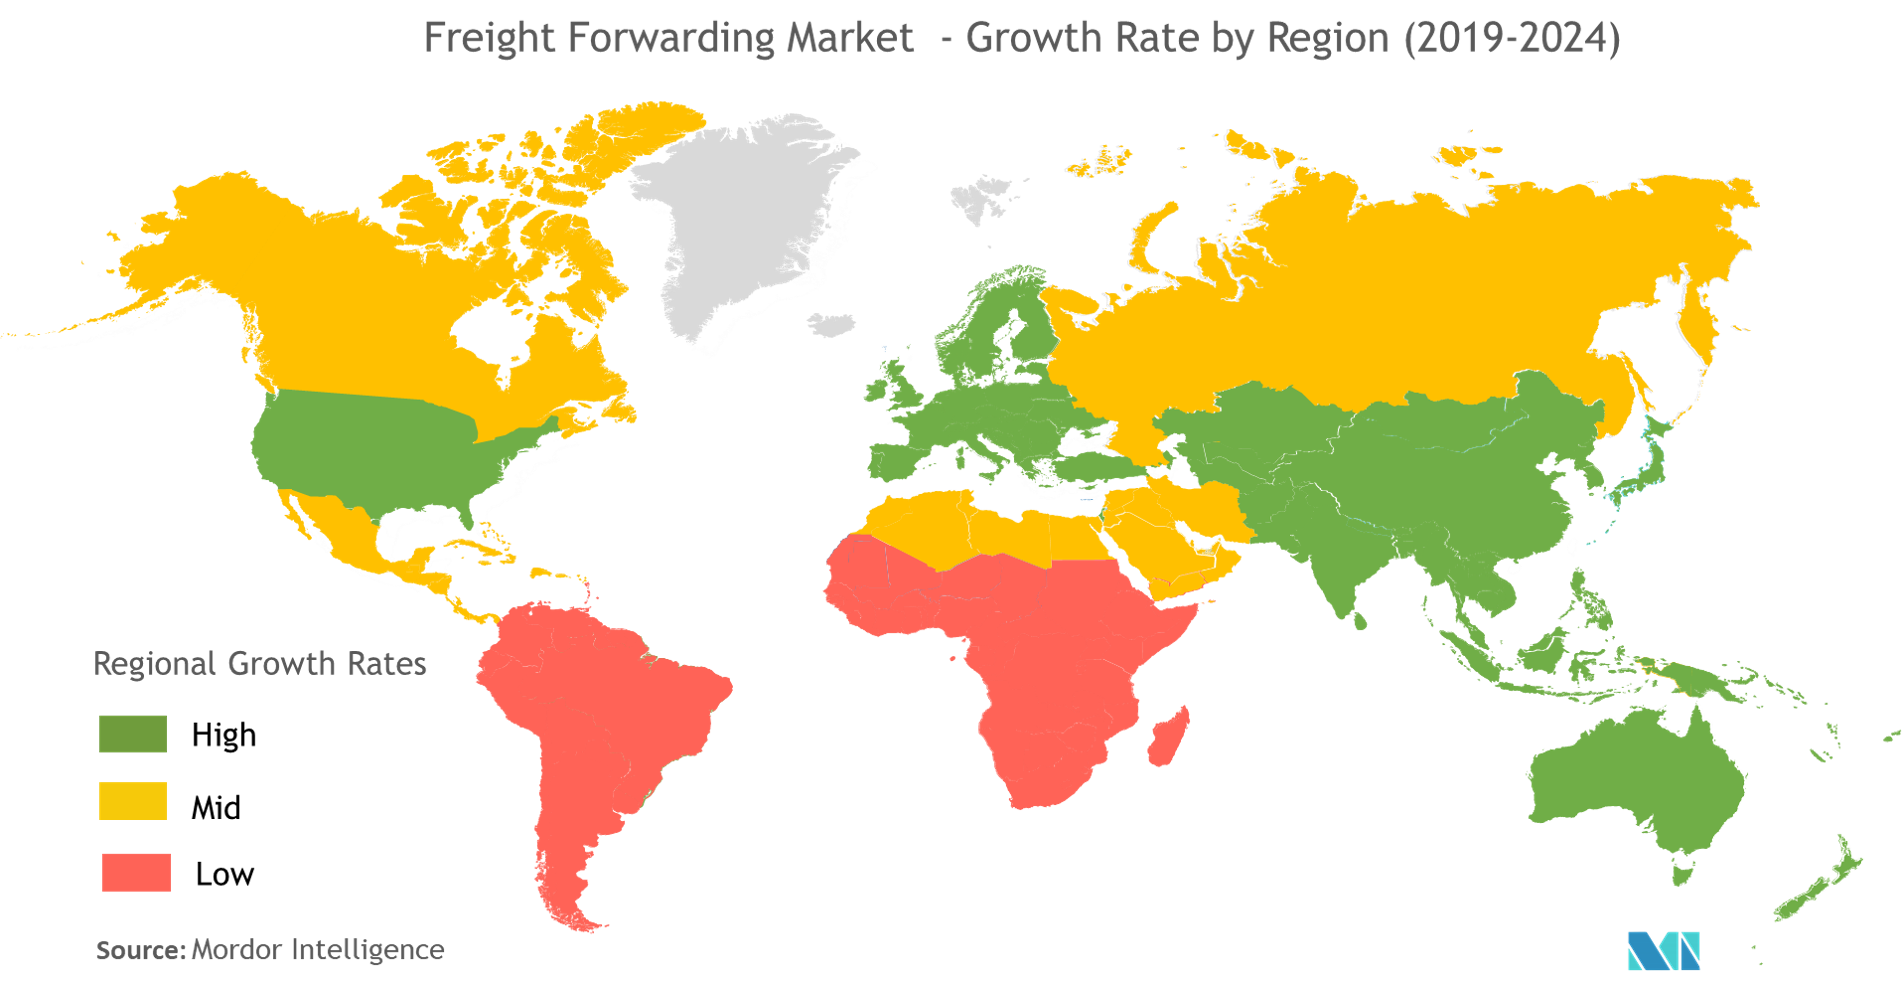 Freight Forwarding Market | Growth, Trends, and Forecast (2019 - 2024)